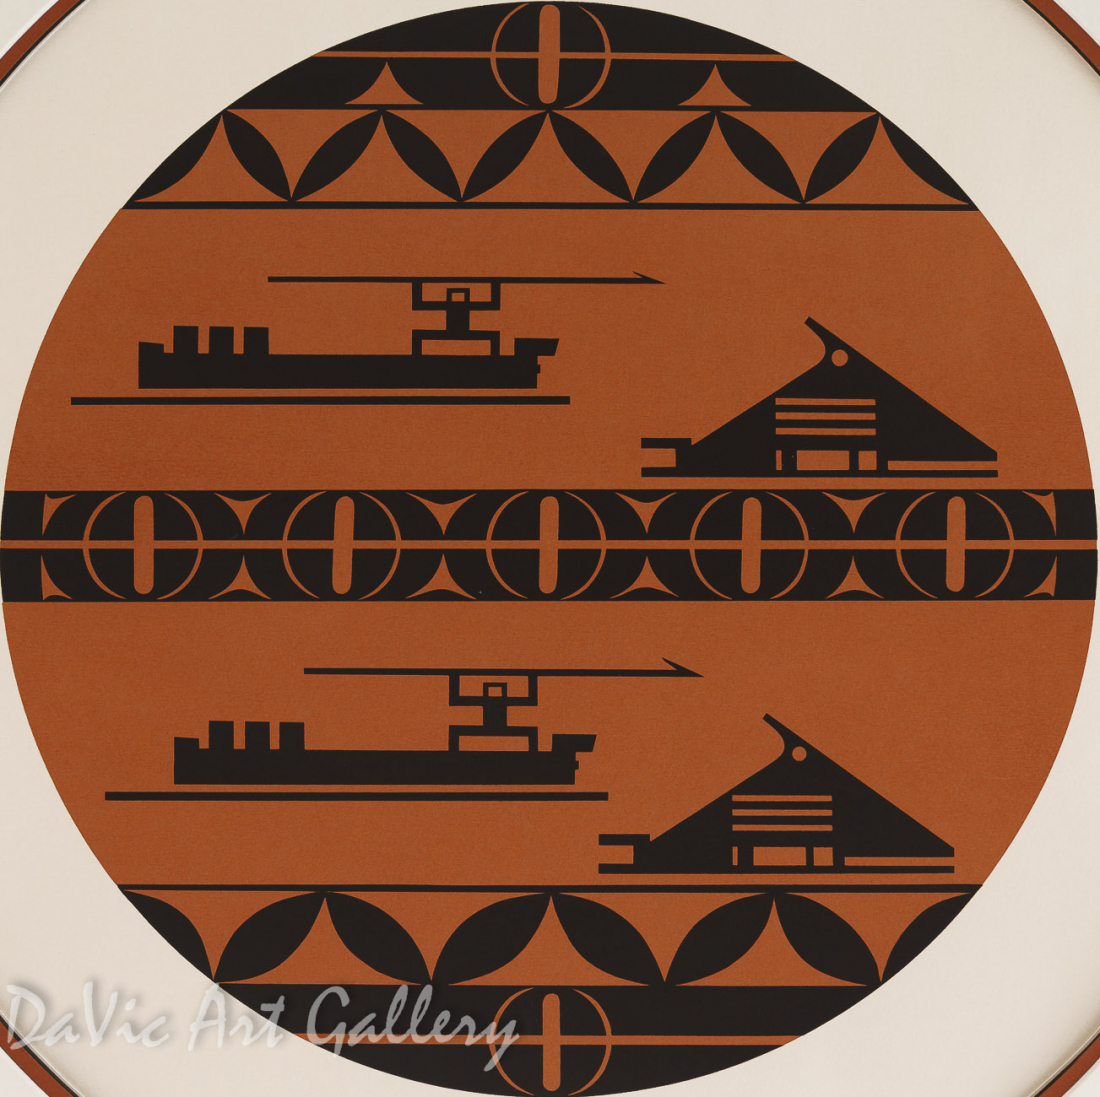 Whaler's Drum by Joe David 1980 - Northwest Coast - Nuu-chah-nulth